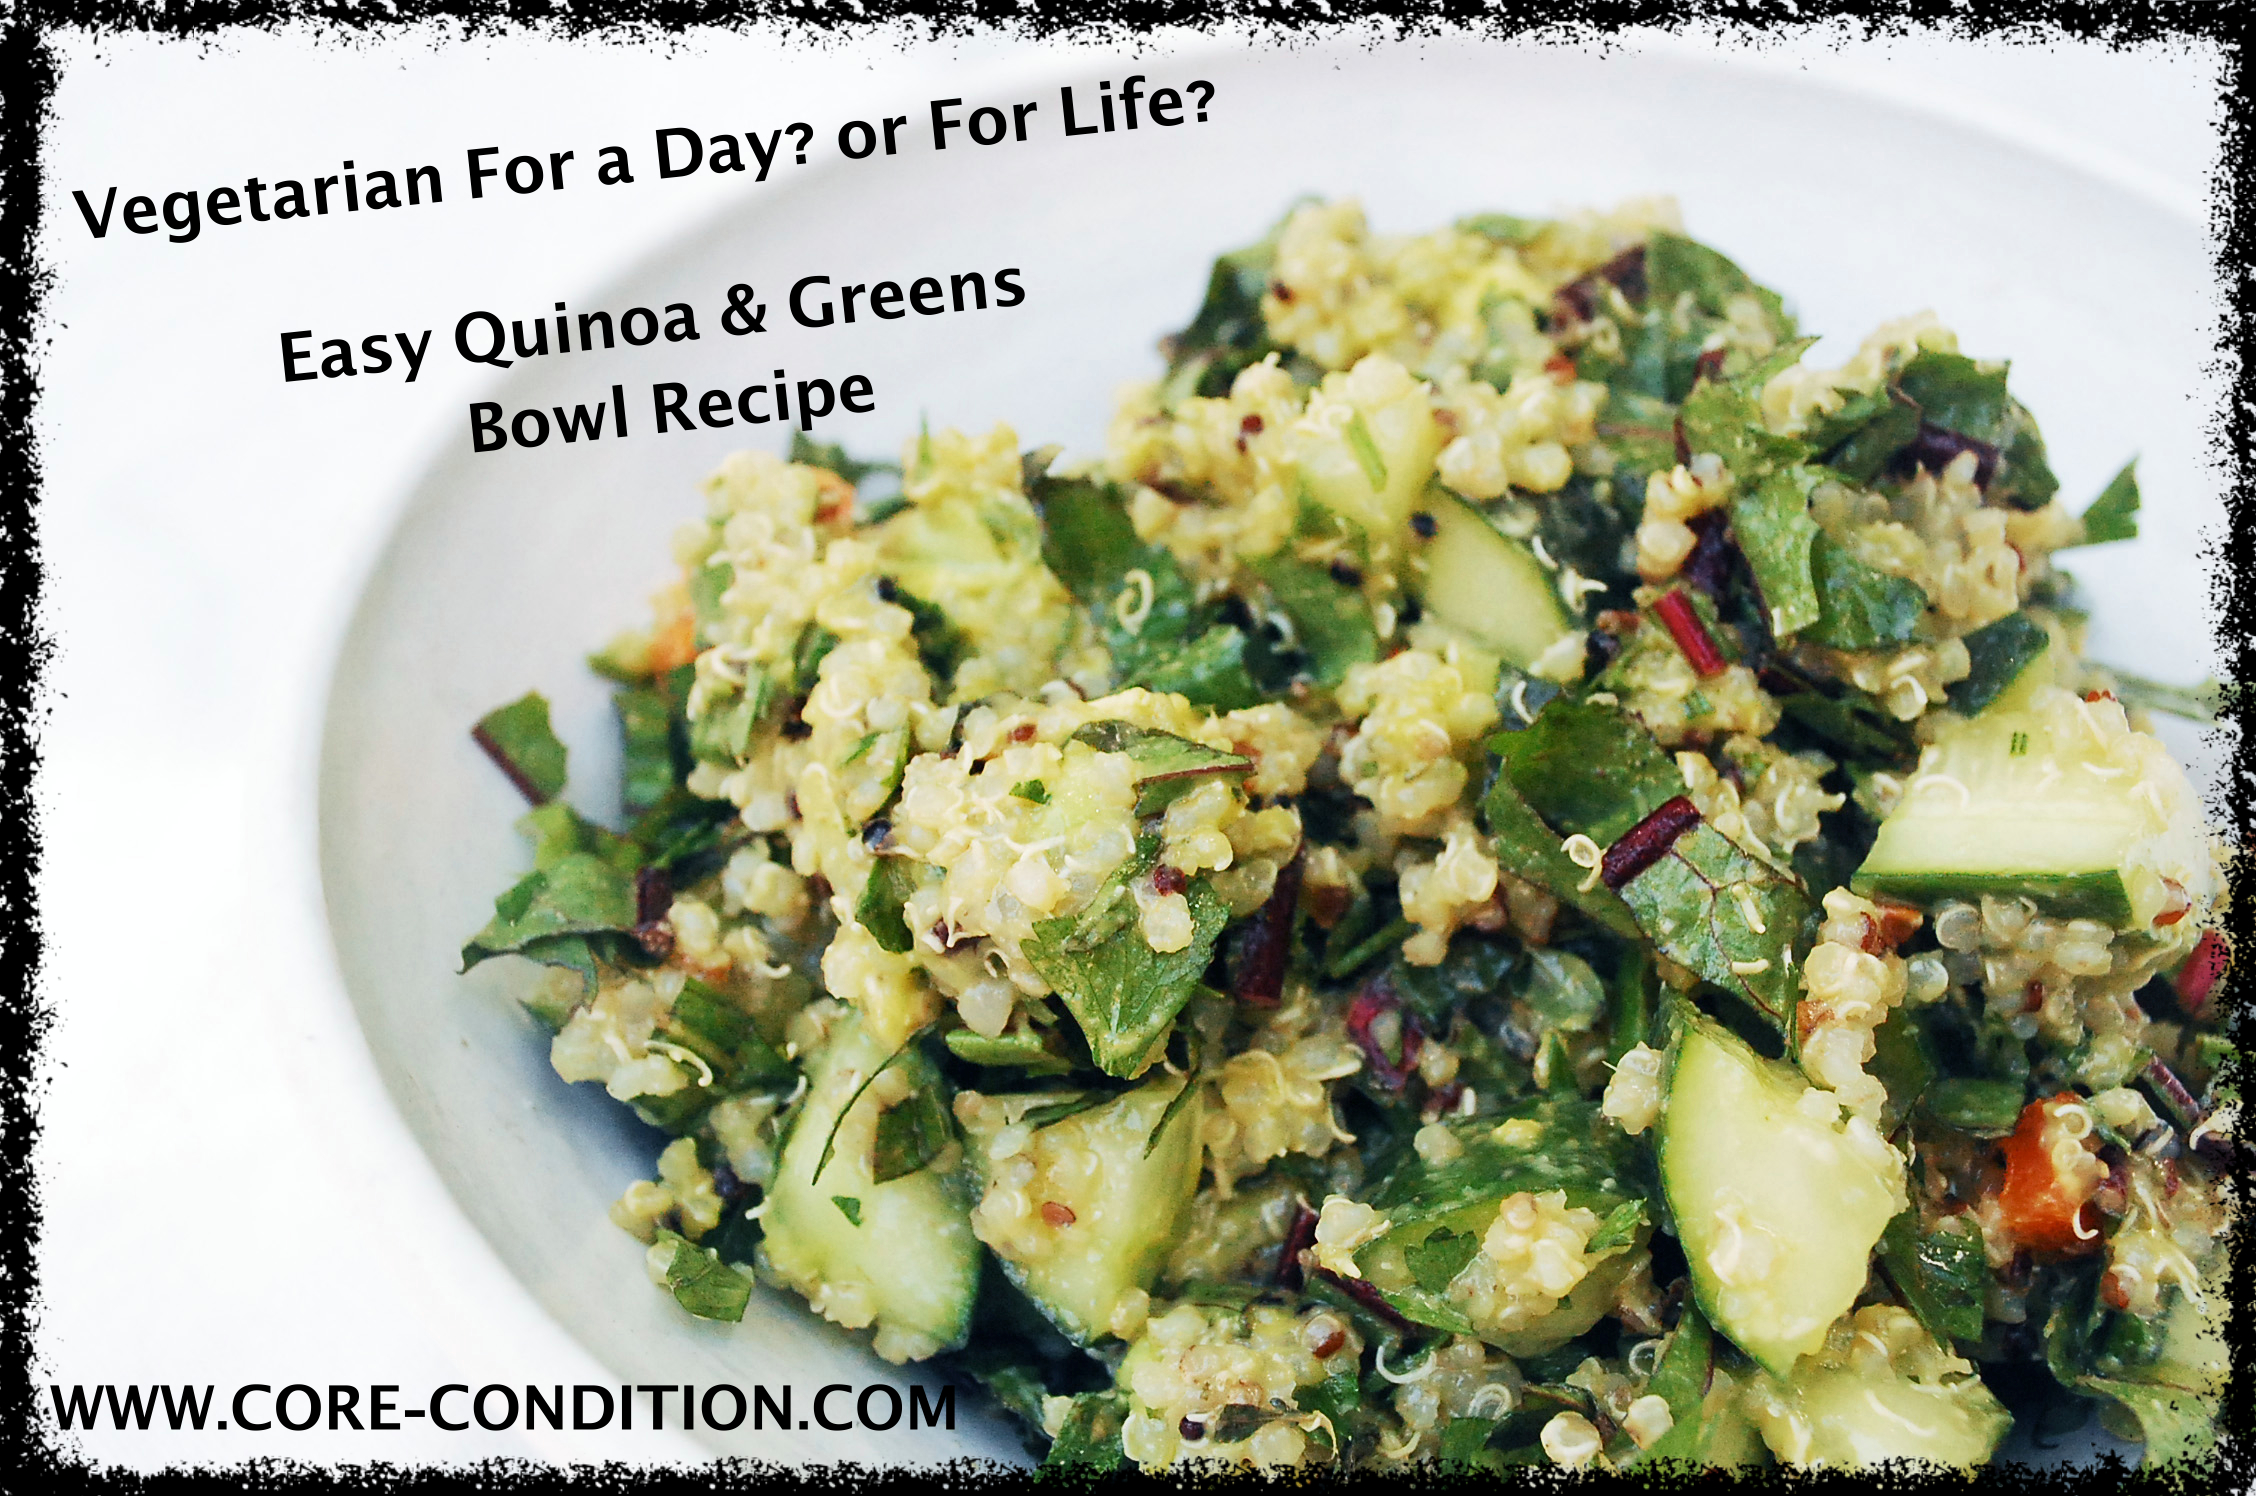 Vegetarian For a Day? Try This Easy Quinoa & Greens Bowl